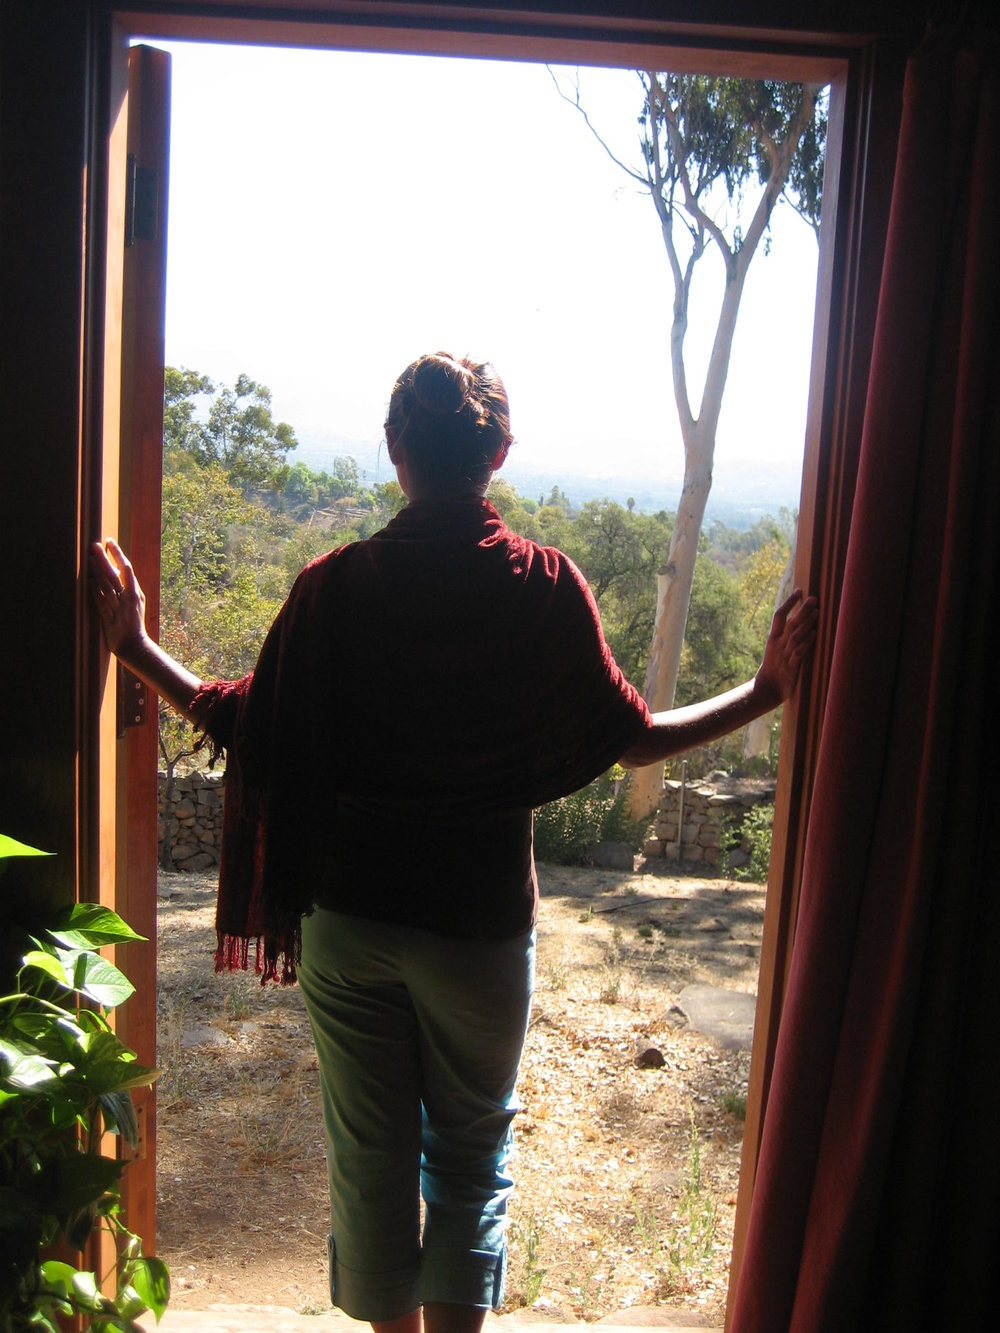 Dream Sanctuary for the Soul Dance Retreat: Eva receiving Tibet bowl vibrations – Me looking out at the beauty of our sacred place